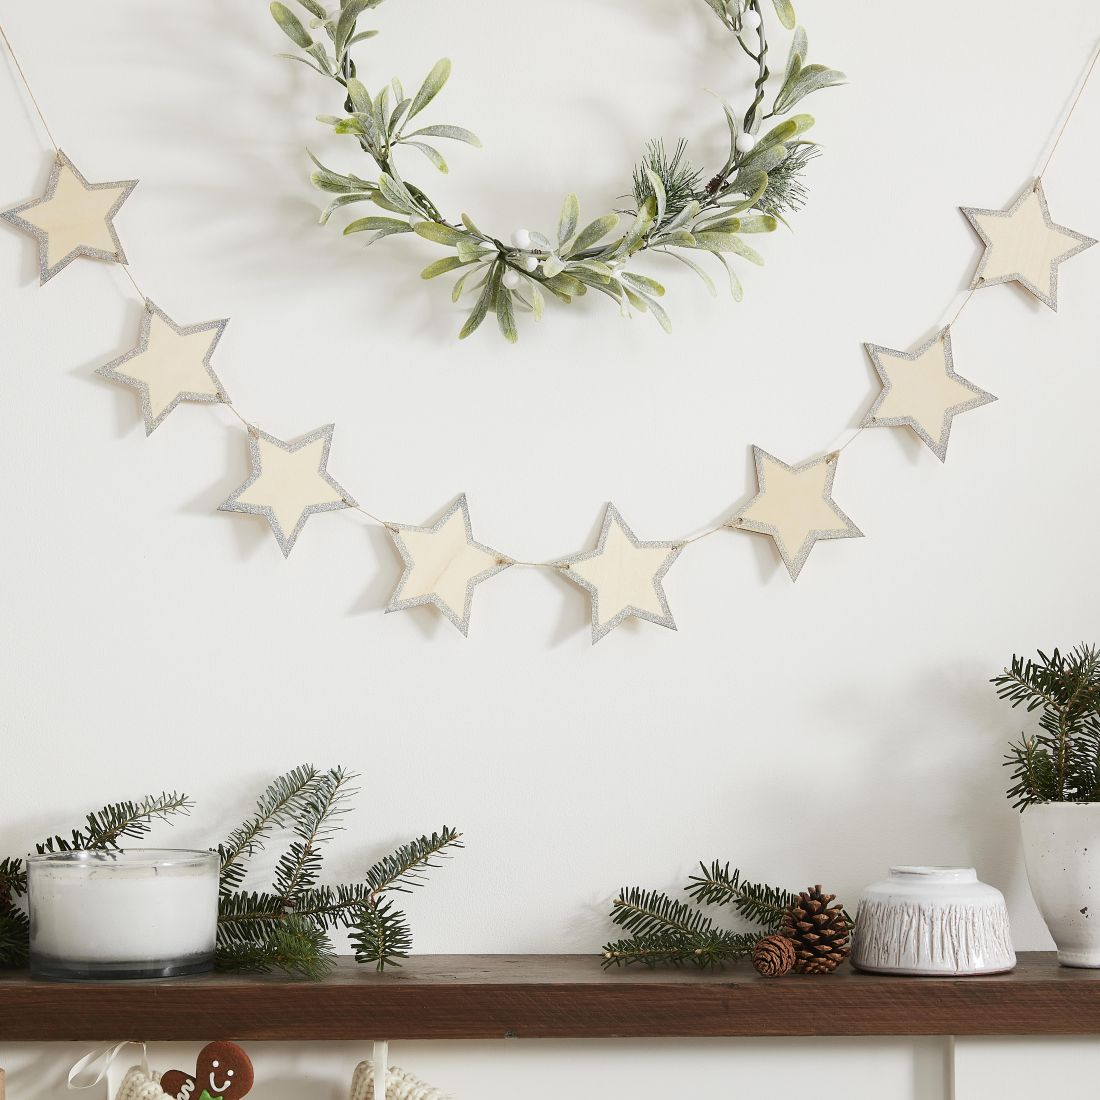 23ginger-ray_wooden-star-bunting-with-glitter-edges-let-it-snow.jpg